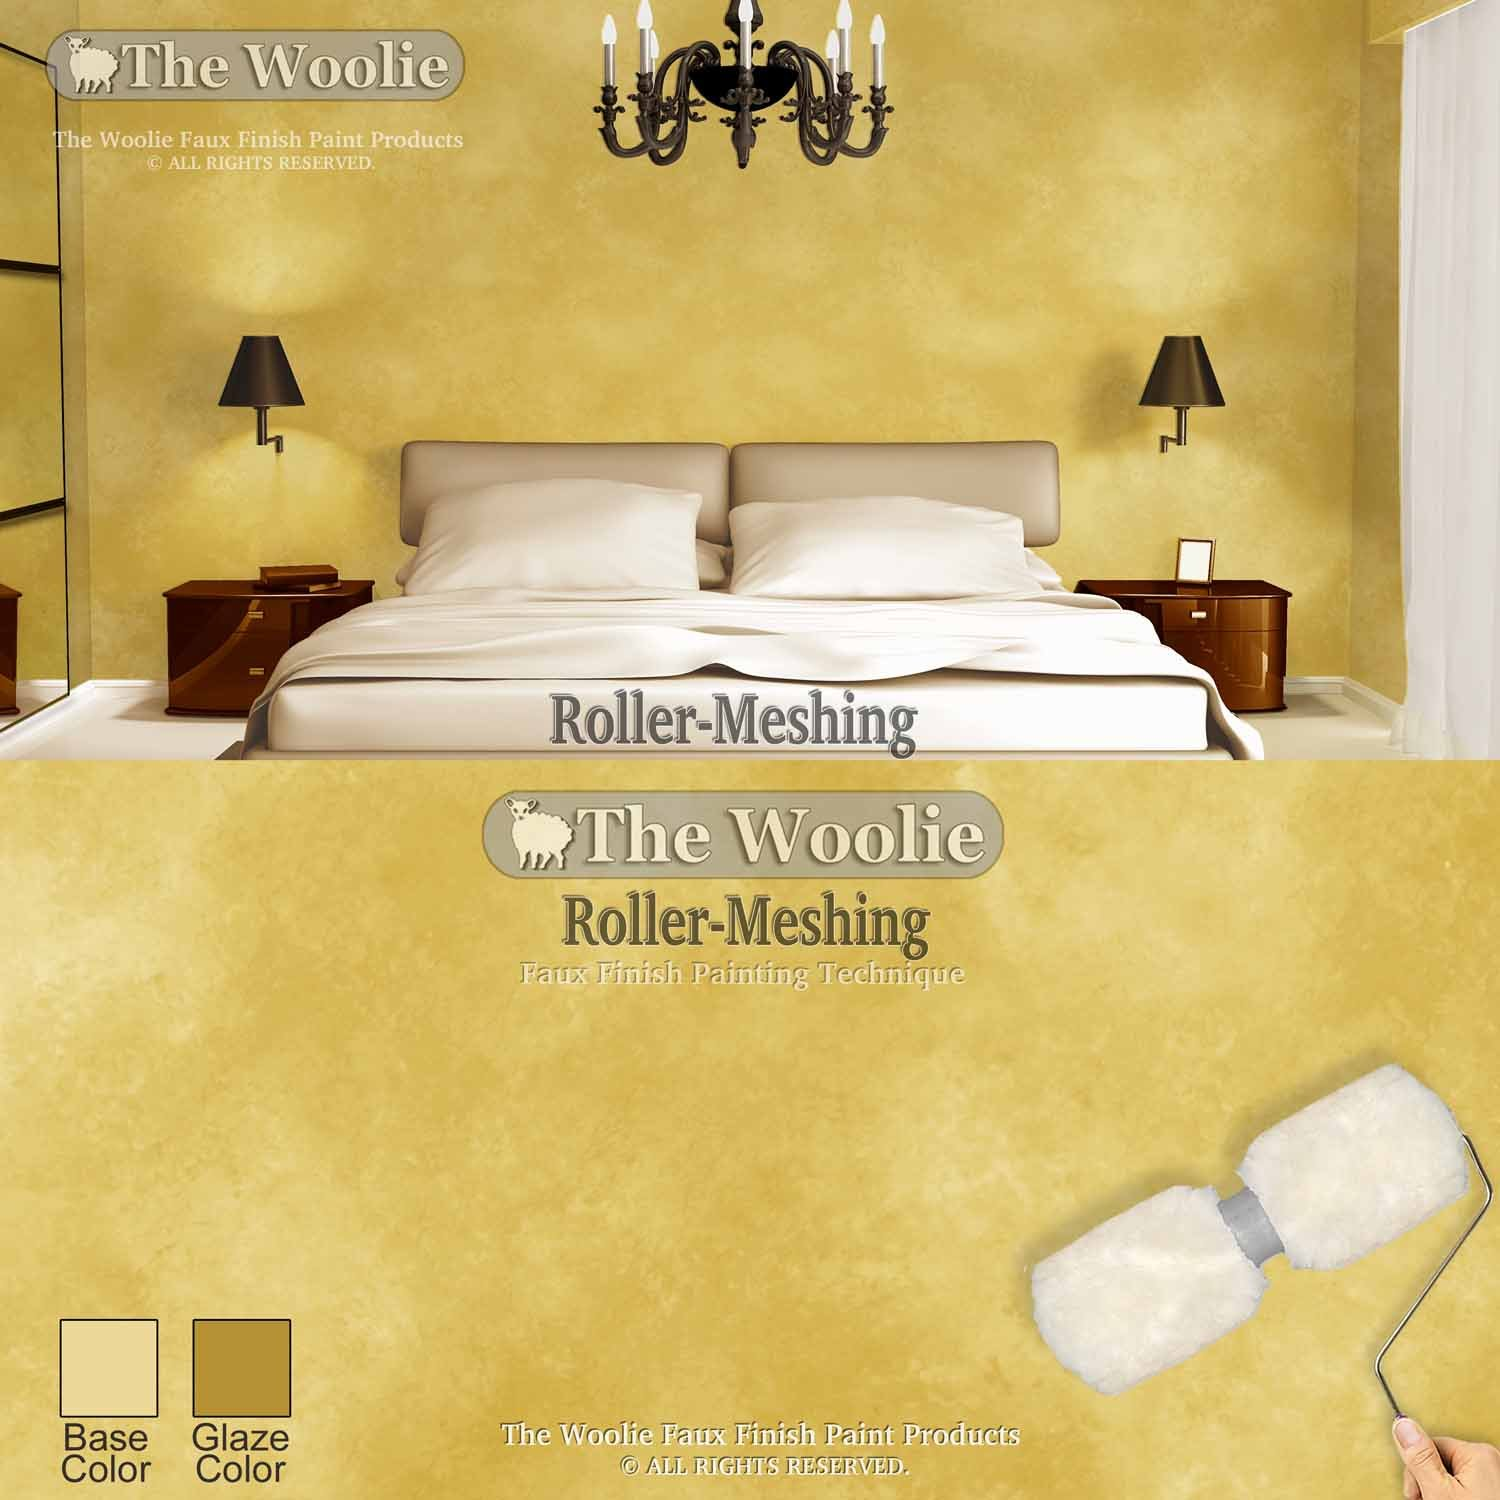 Faux Painting Double Roller Tray The Woolie Original Dual 2-Color Split Roller Value 2-Pack Tray